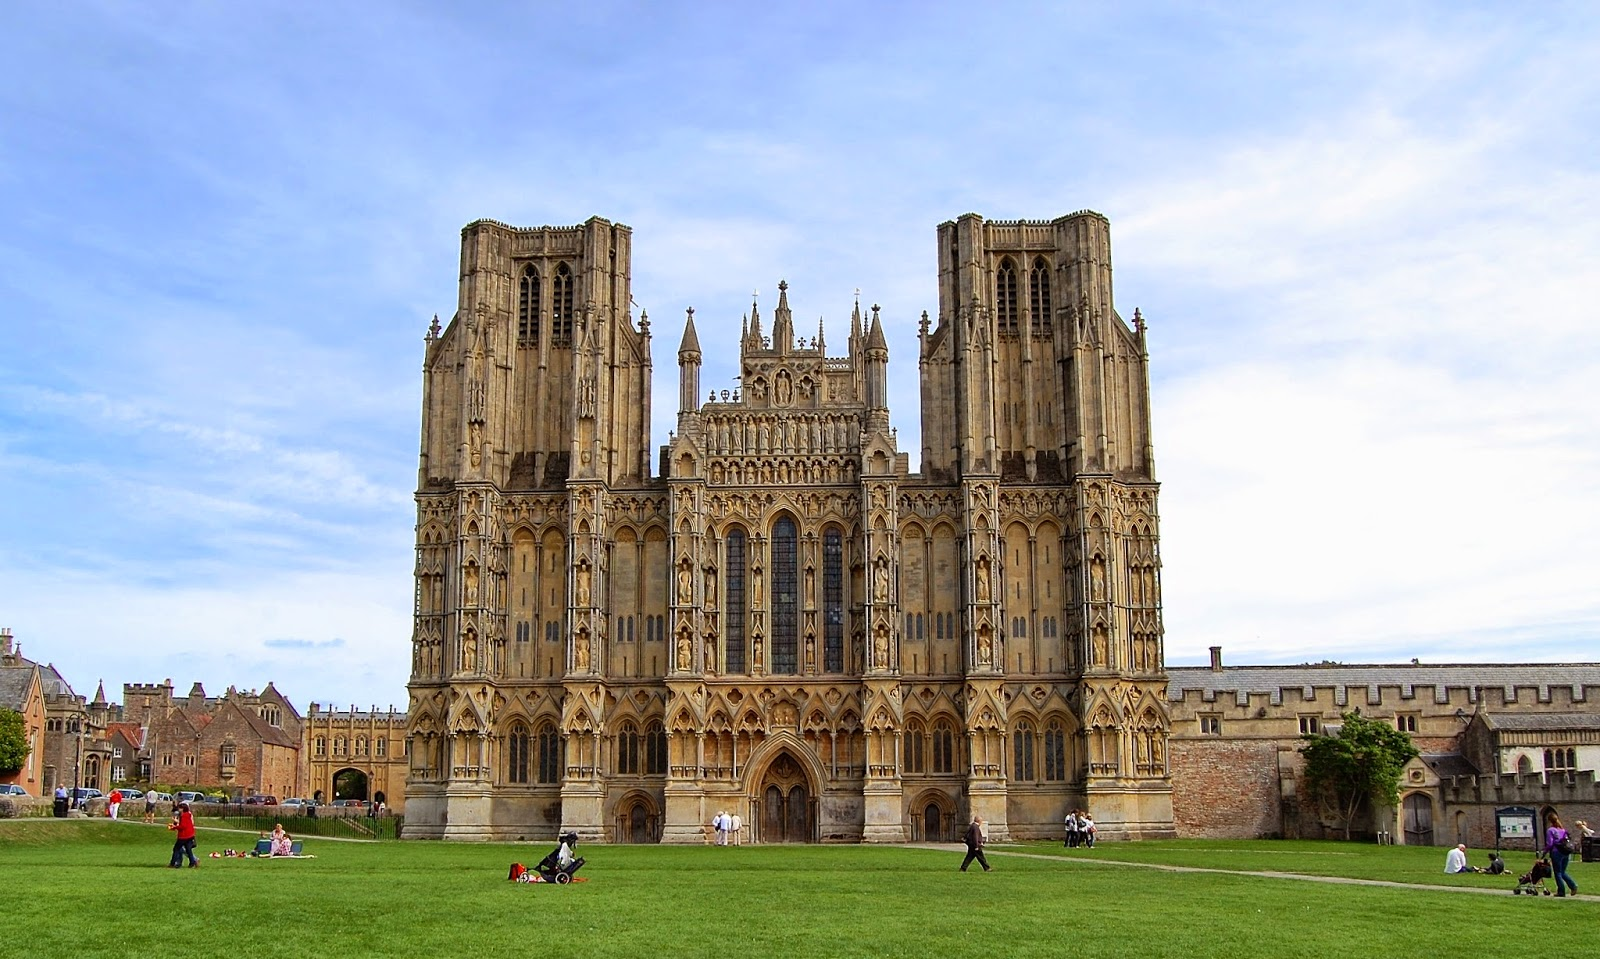 West facade of Wells Cathedral